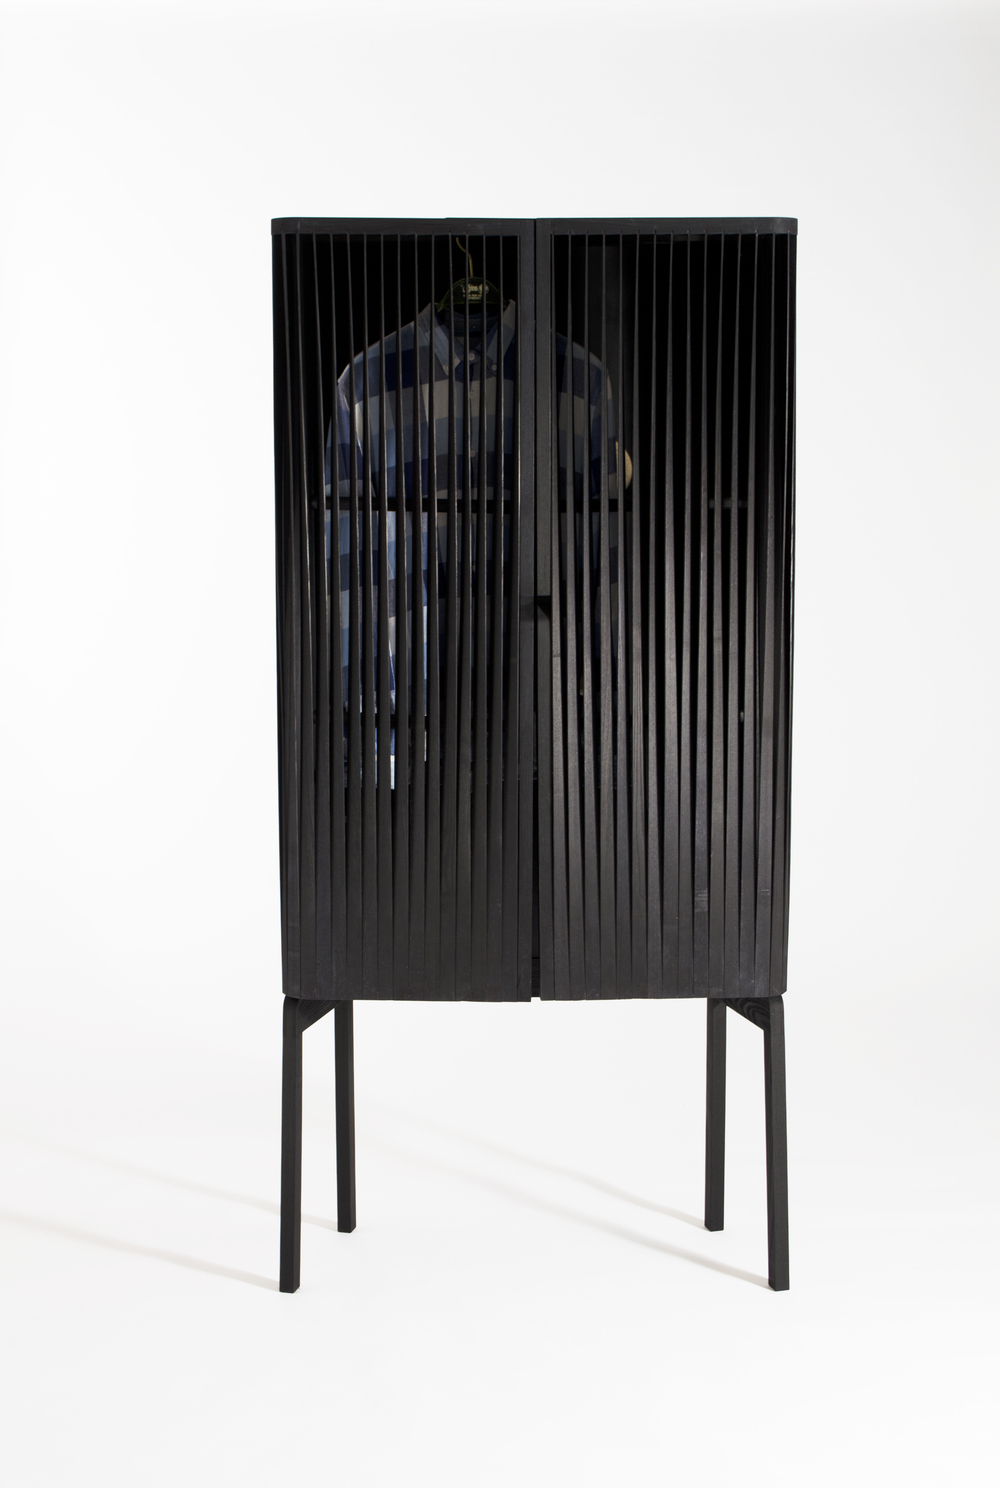 Cabinet by Charlie Styrbjörn Nilsson in collaboration with Olle K Engberg and Ludwig Berg (8).jpg